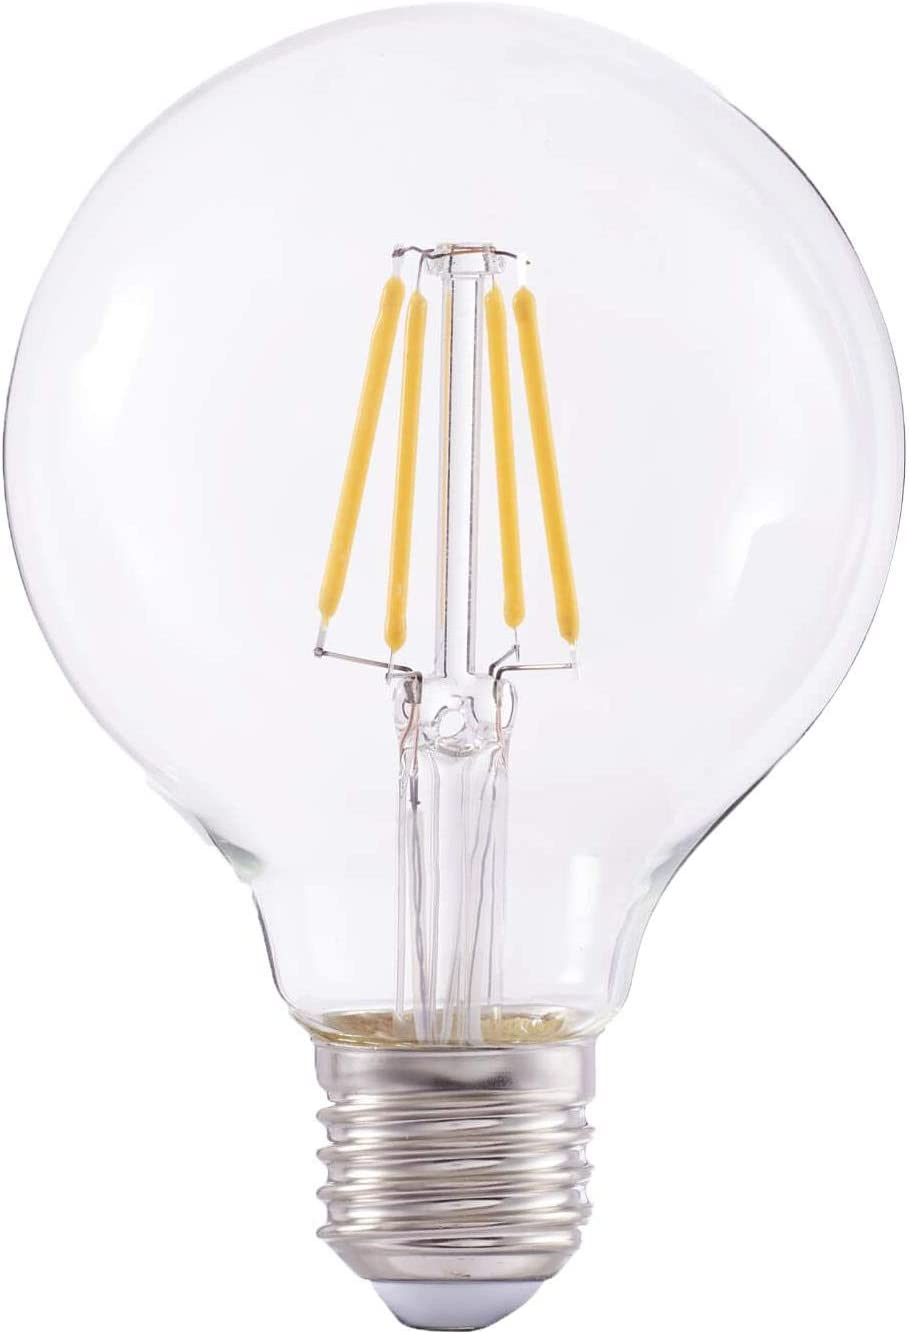 LED Edison Bulbs: Vintage Style Meets